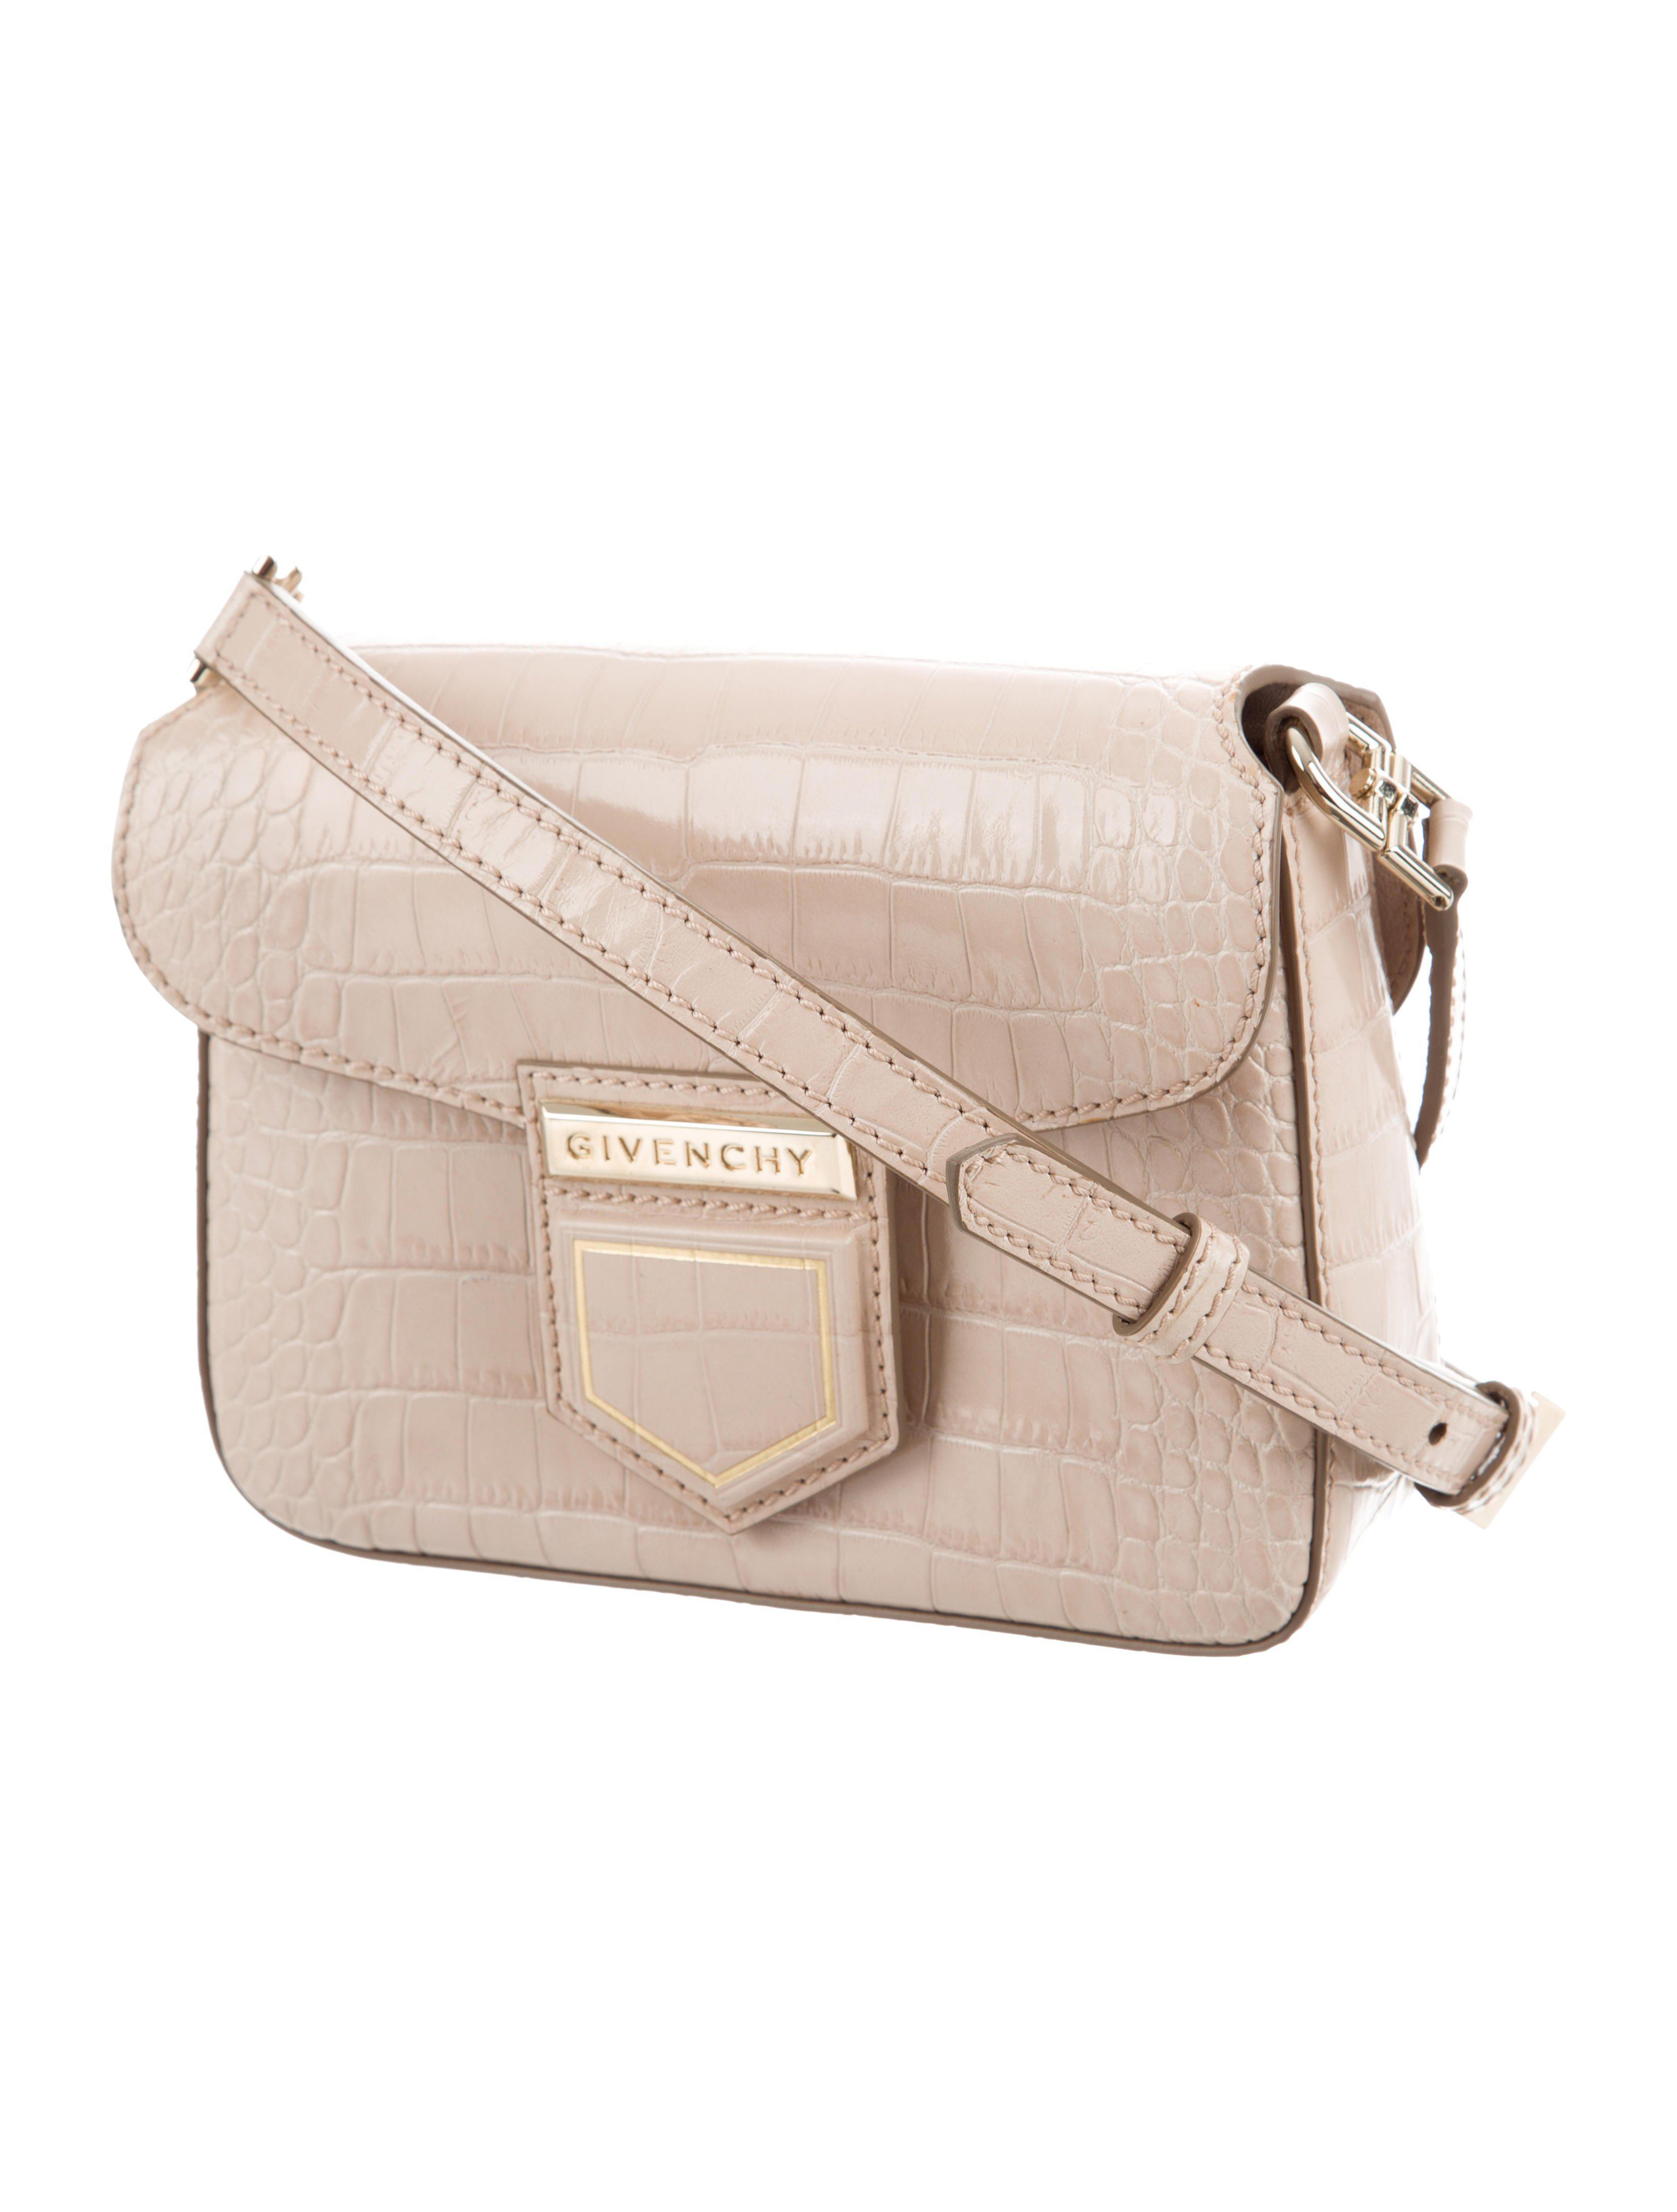 a7a1e965f5 Lyst - Givenchy Small Nobile Crossbody Bag Beige in Metallic